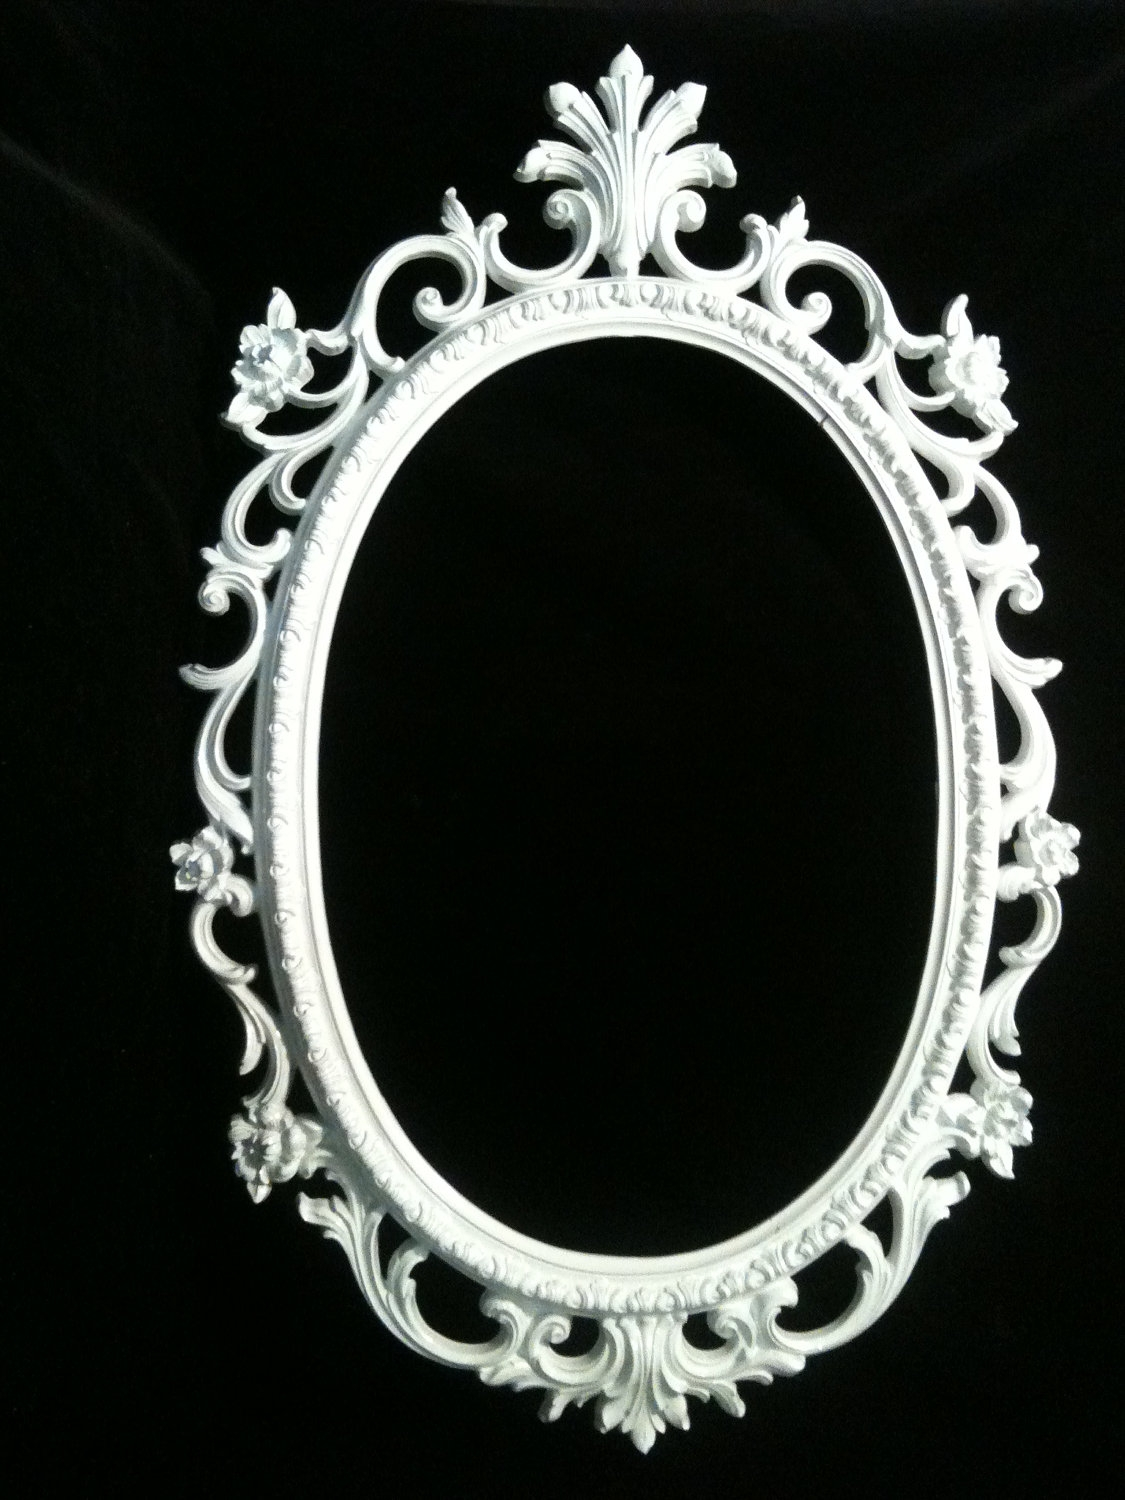 Gloss White Oval Picture Frame Mirror Shab Chic Baroque Gothic Within White Baroque Wall Mirror (Image 6 of 15)